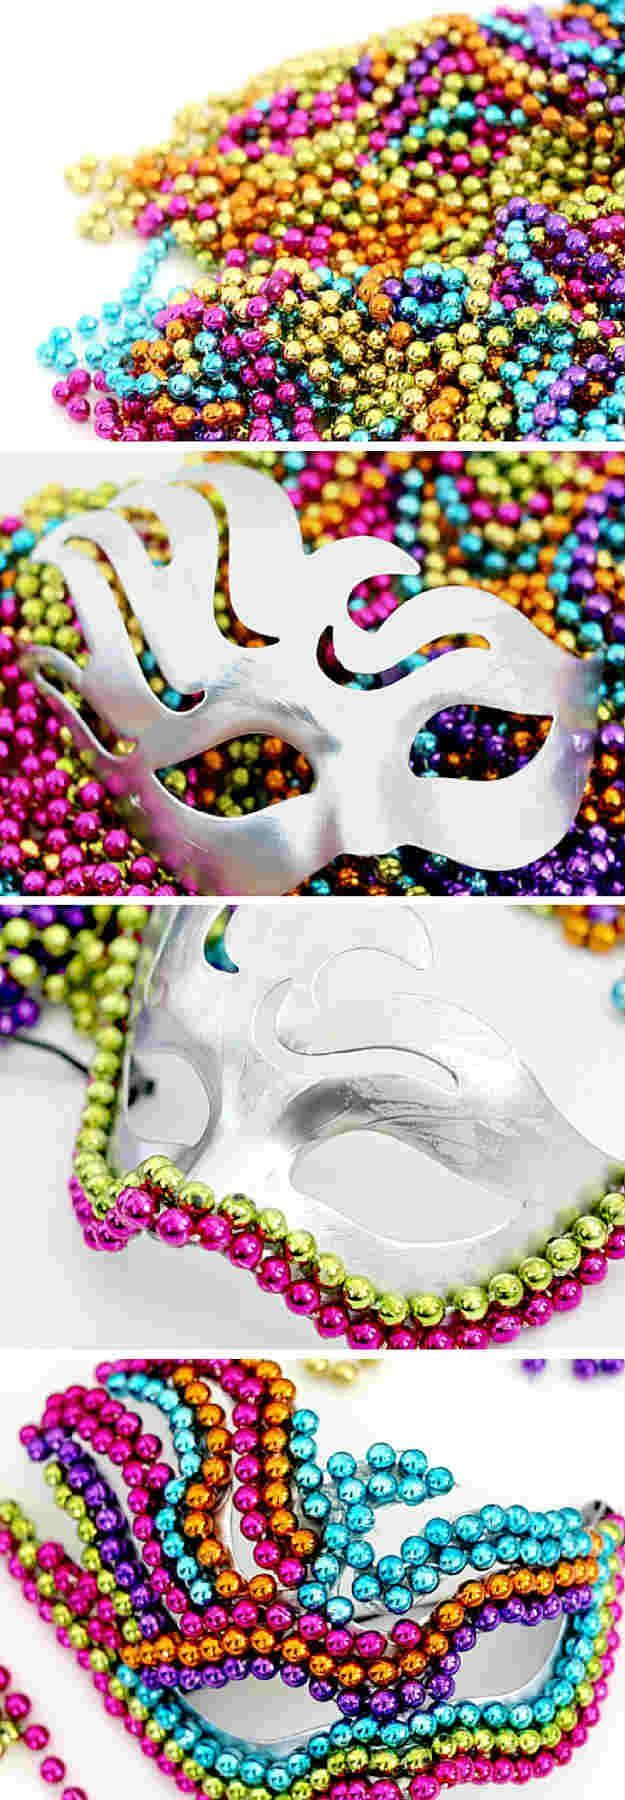 on photos pile image mask feathered gras of stock new beads orleans mardi a carnival photo